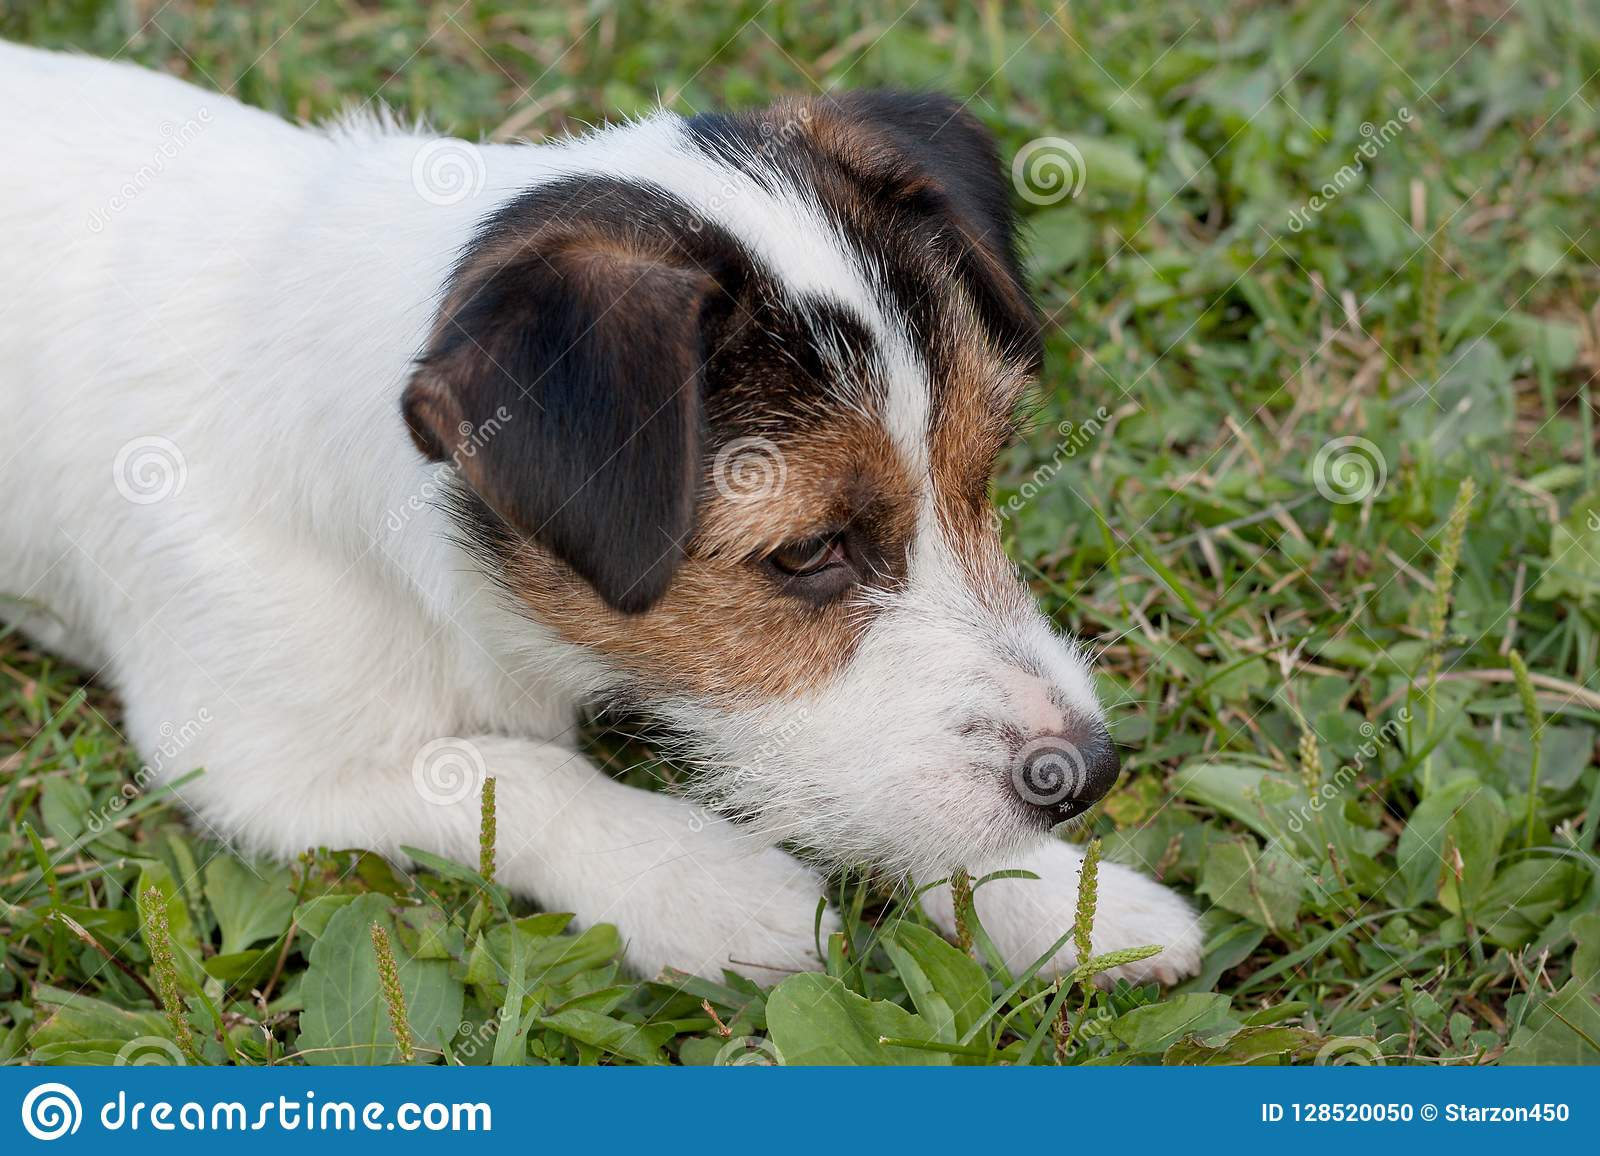 Cute jack russell terrier puppy with hazel eyes. Pet animals.